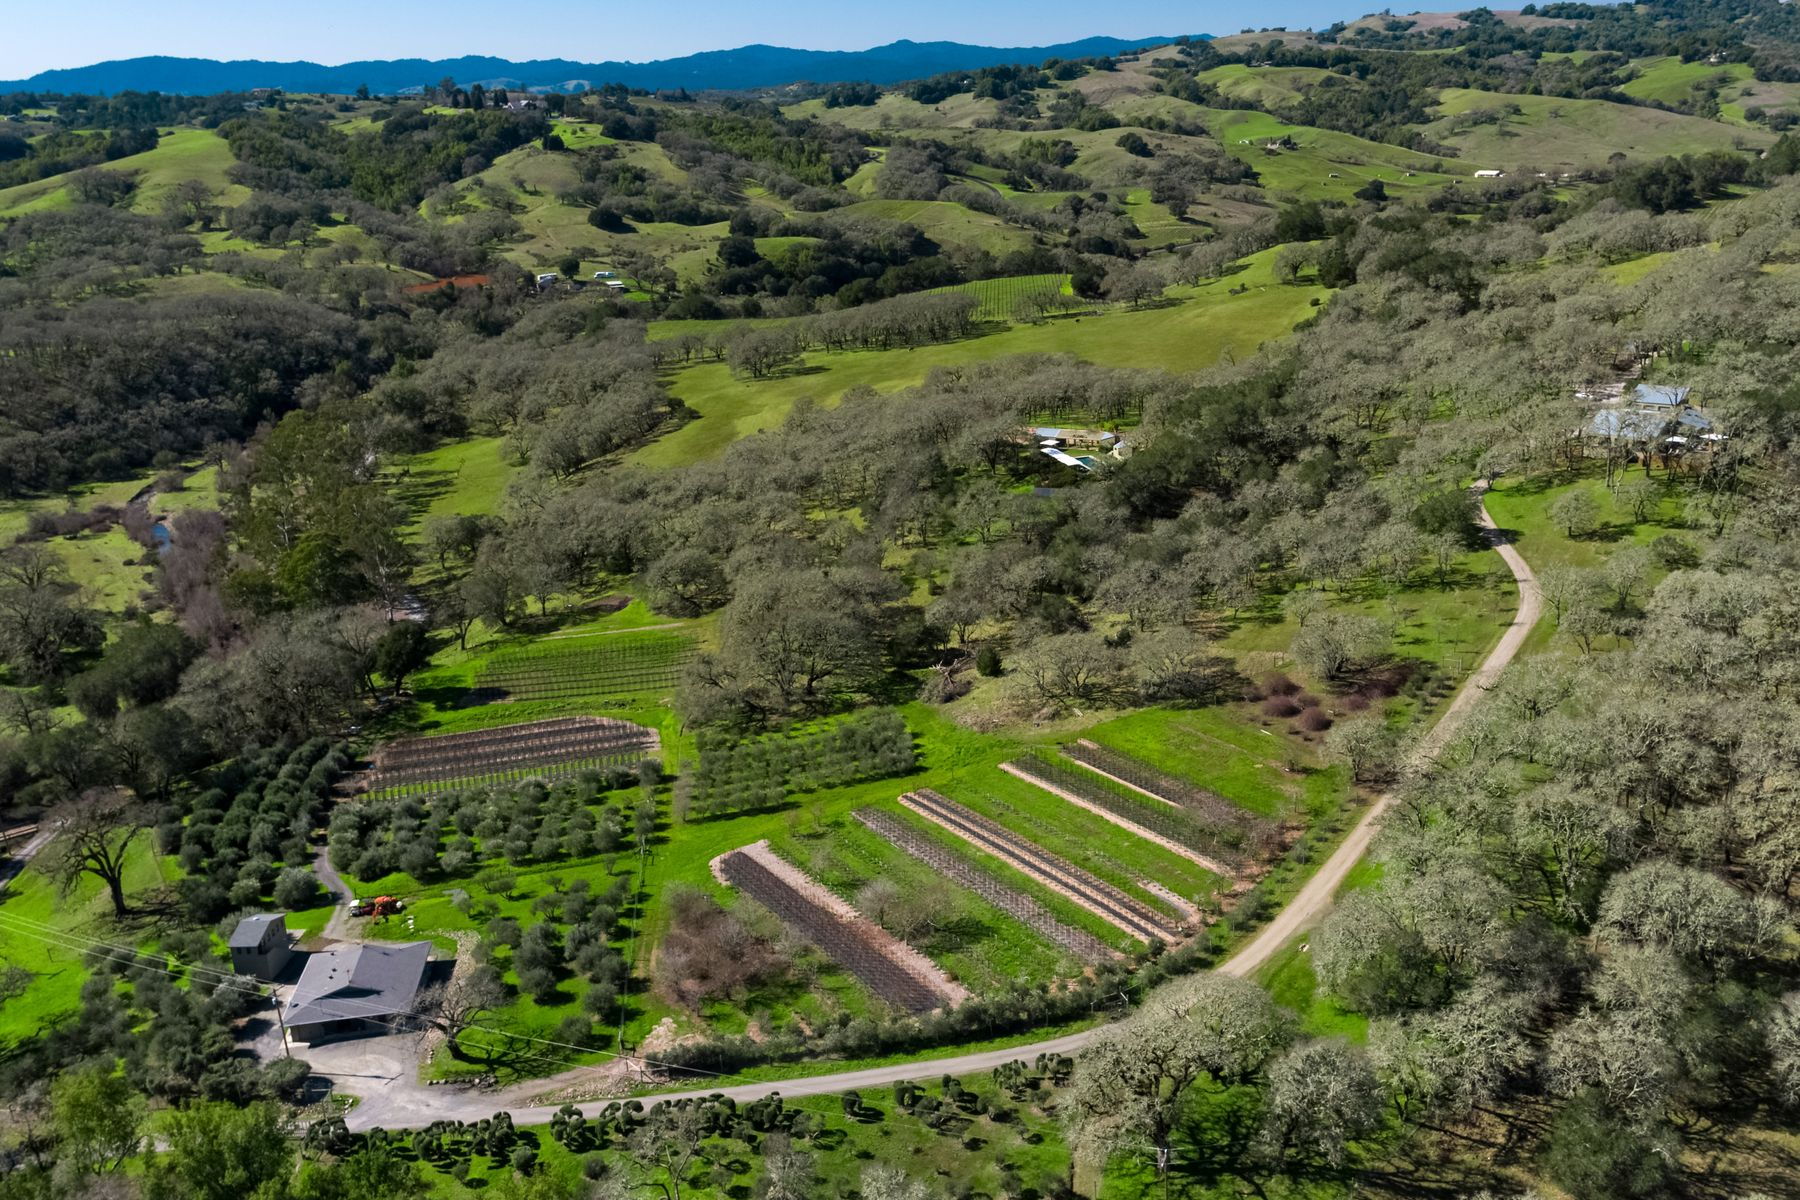 Single Family Homes for Sale at An Artful Sanctuary 11720 Chalk Hill Rd Healdsburg, California 95448 United States